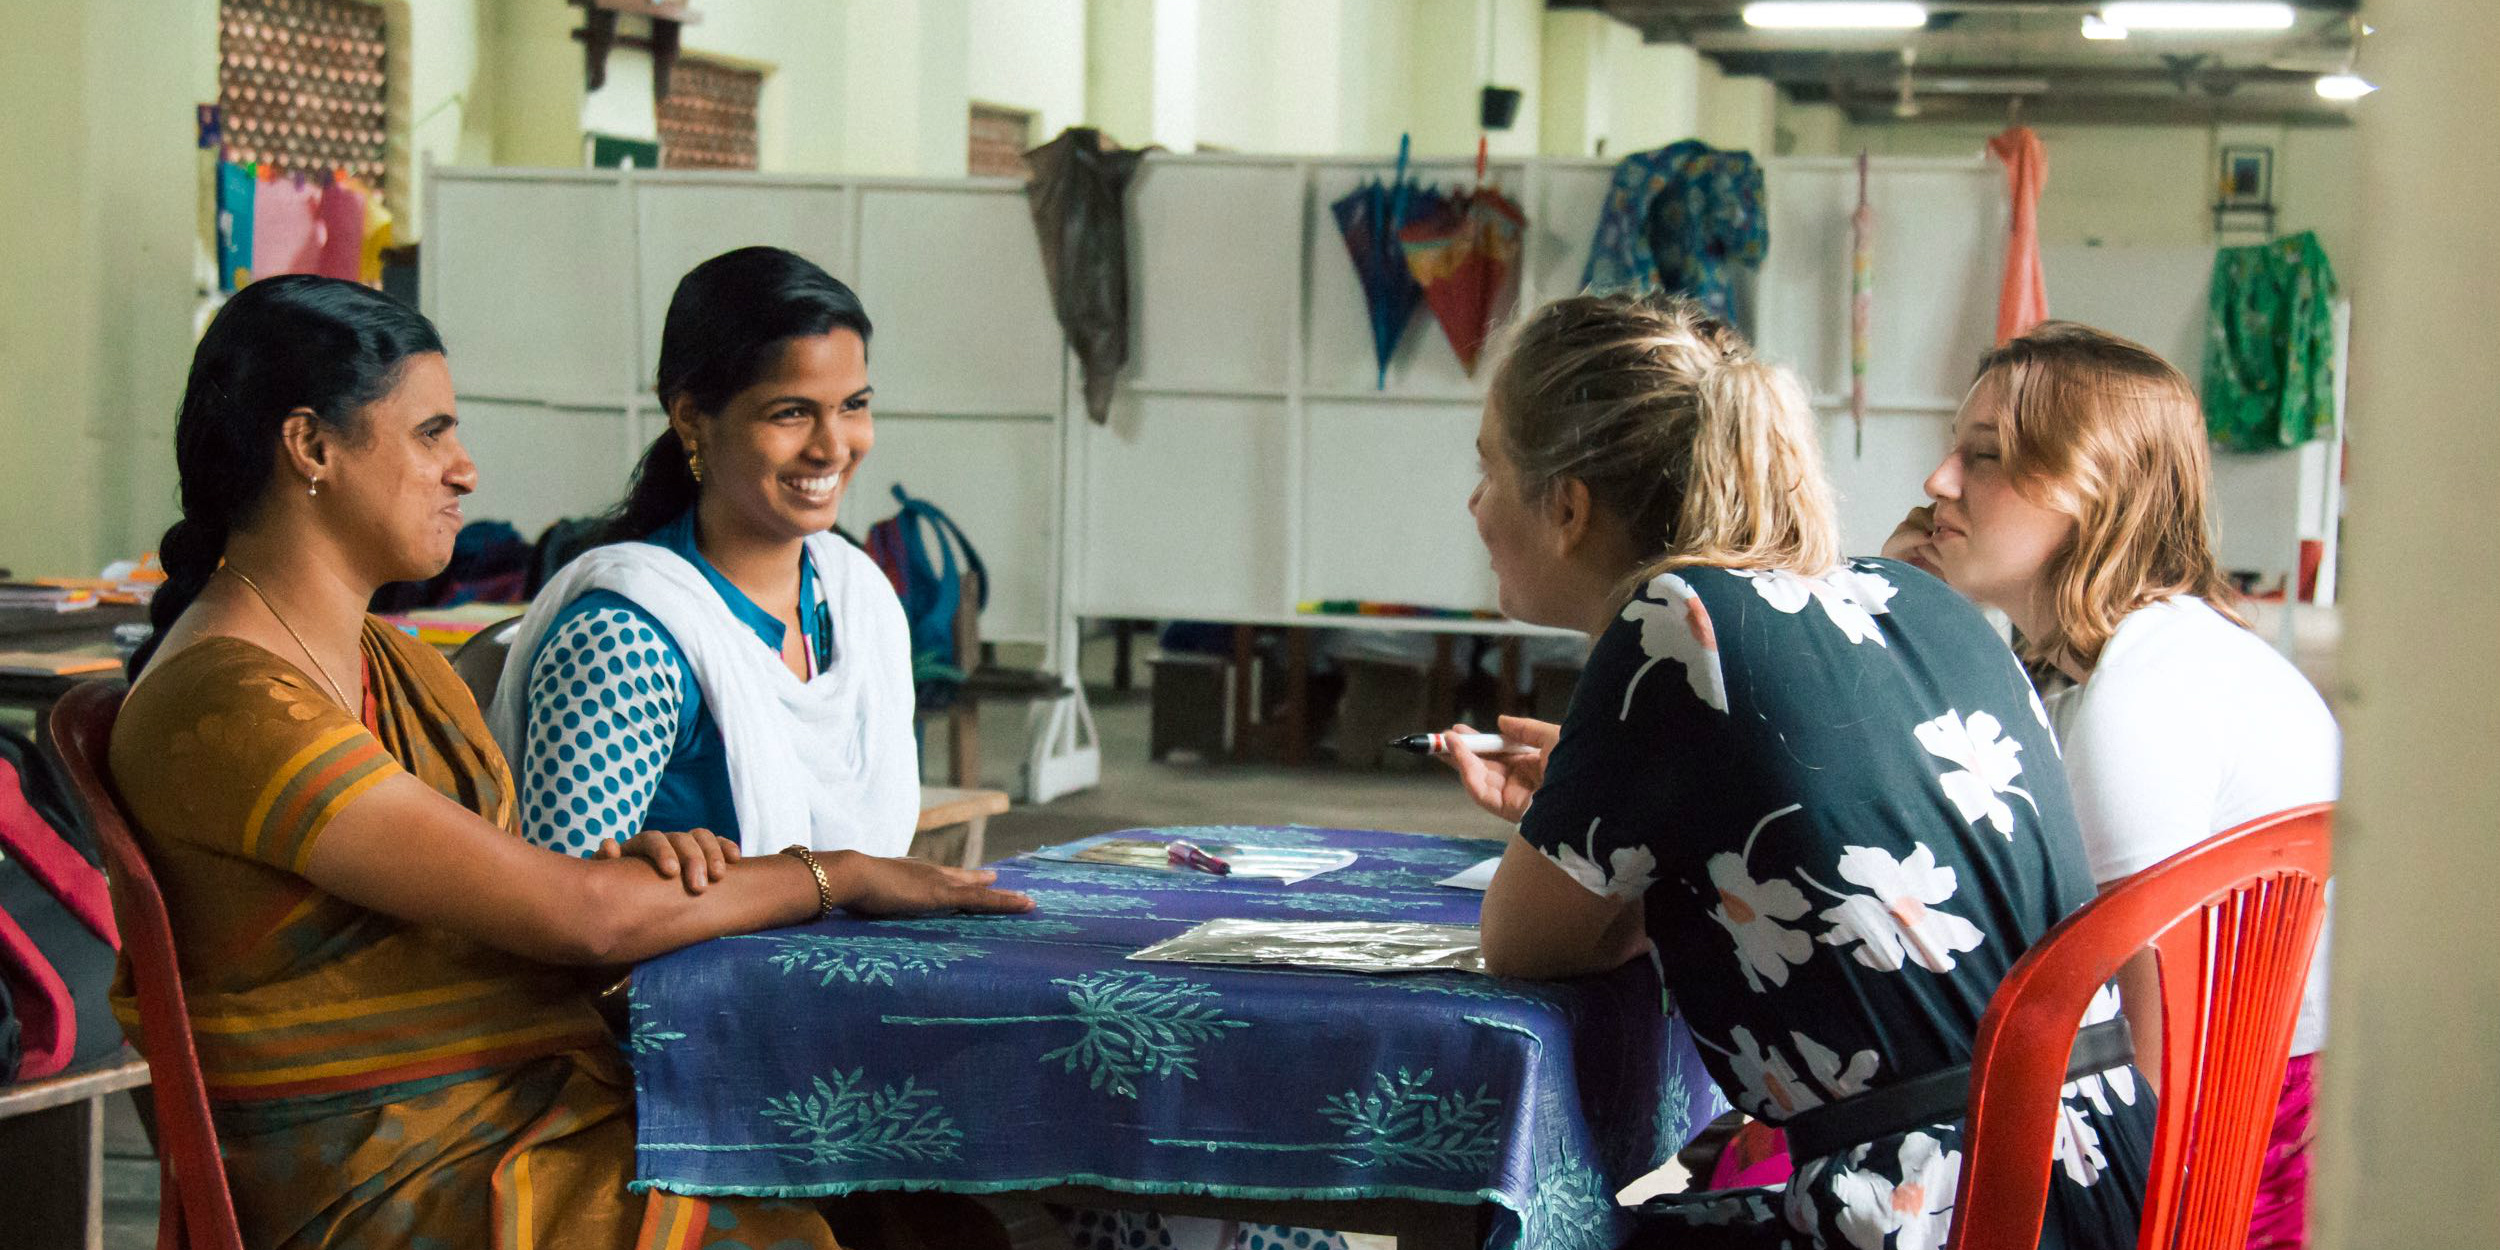 GVI participants engage with local women as part of a women's empowerment program.